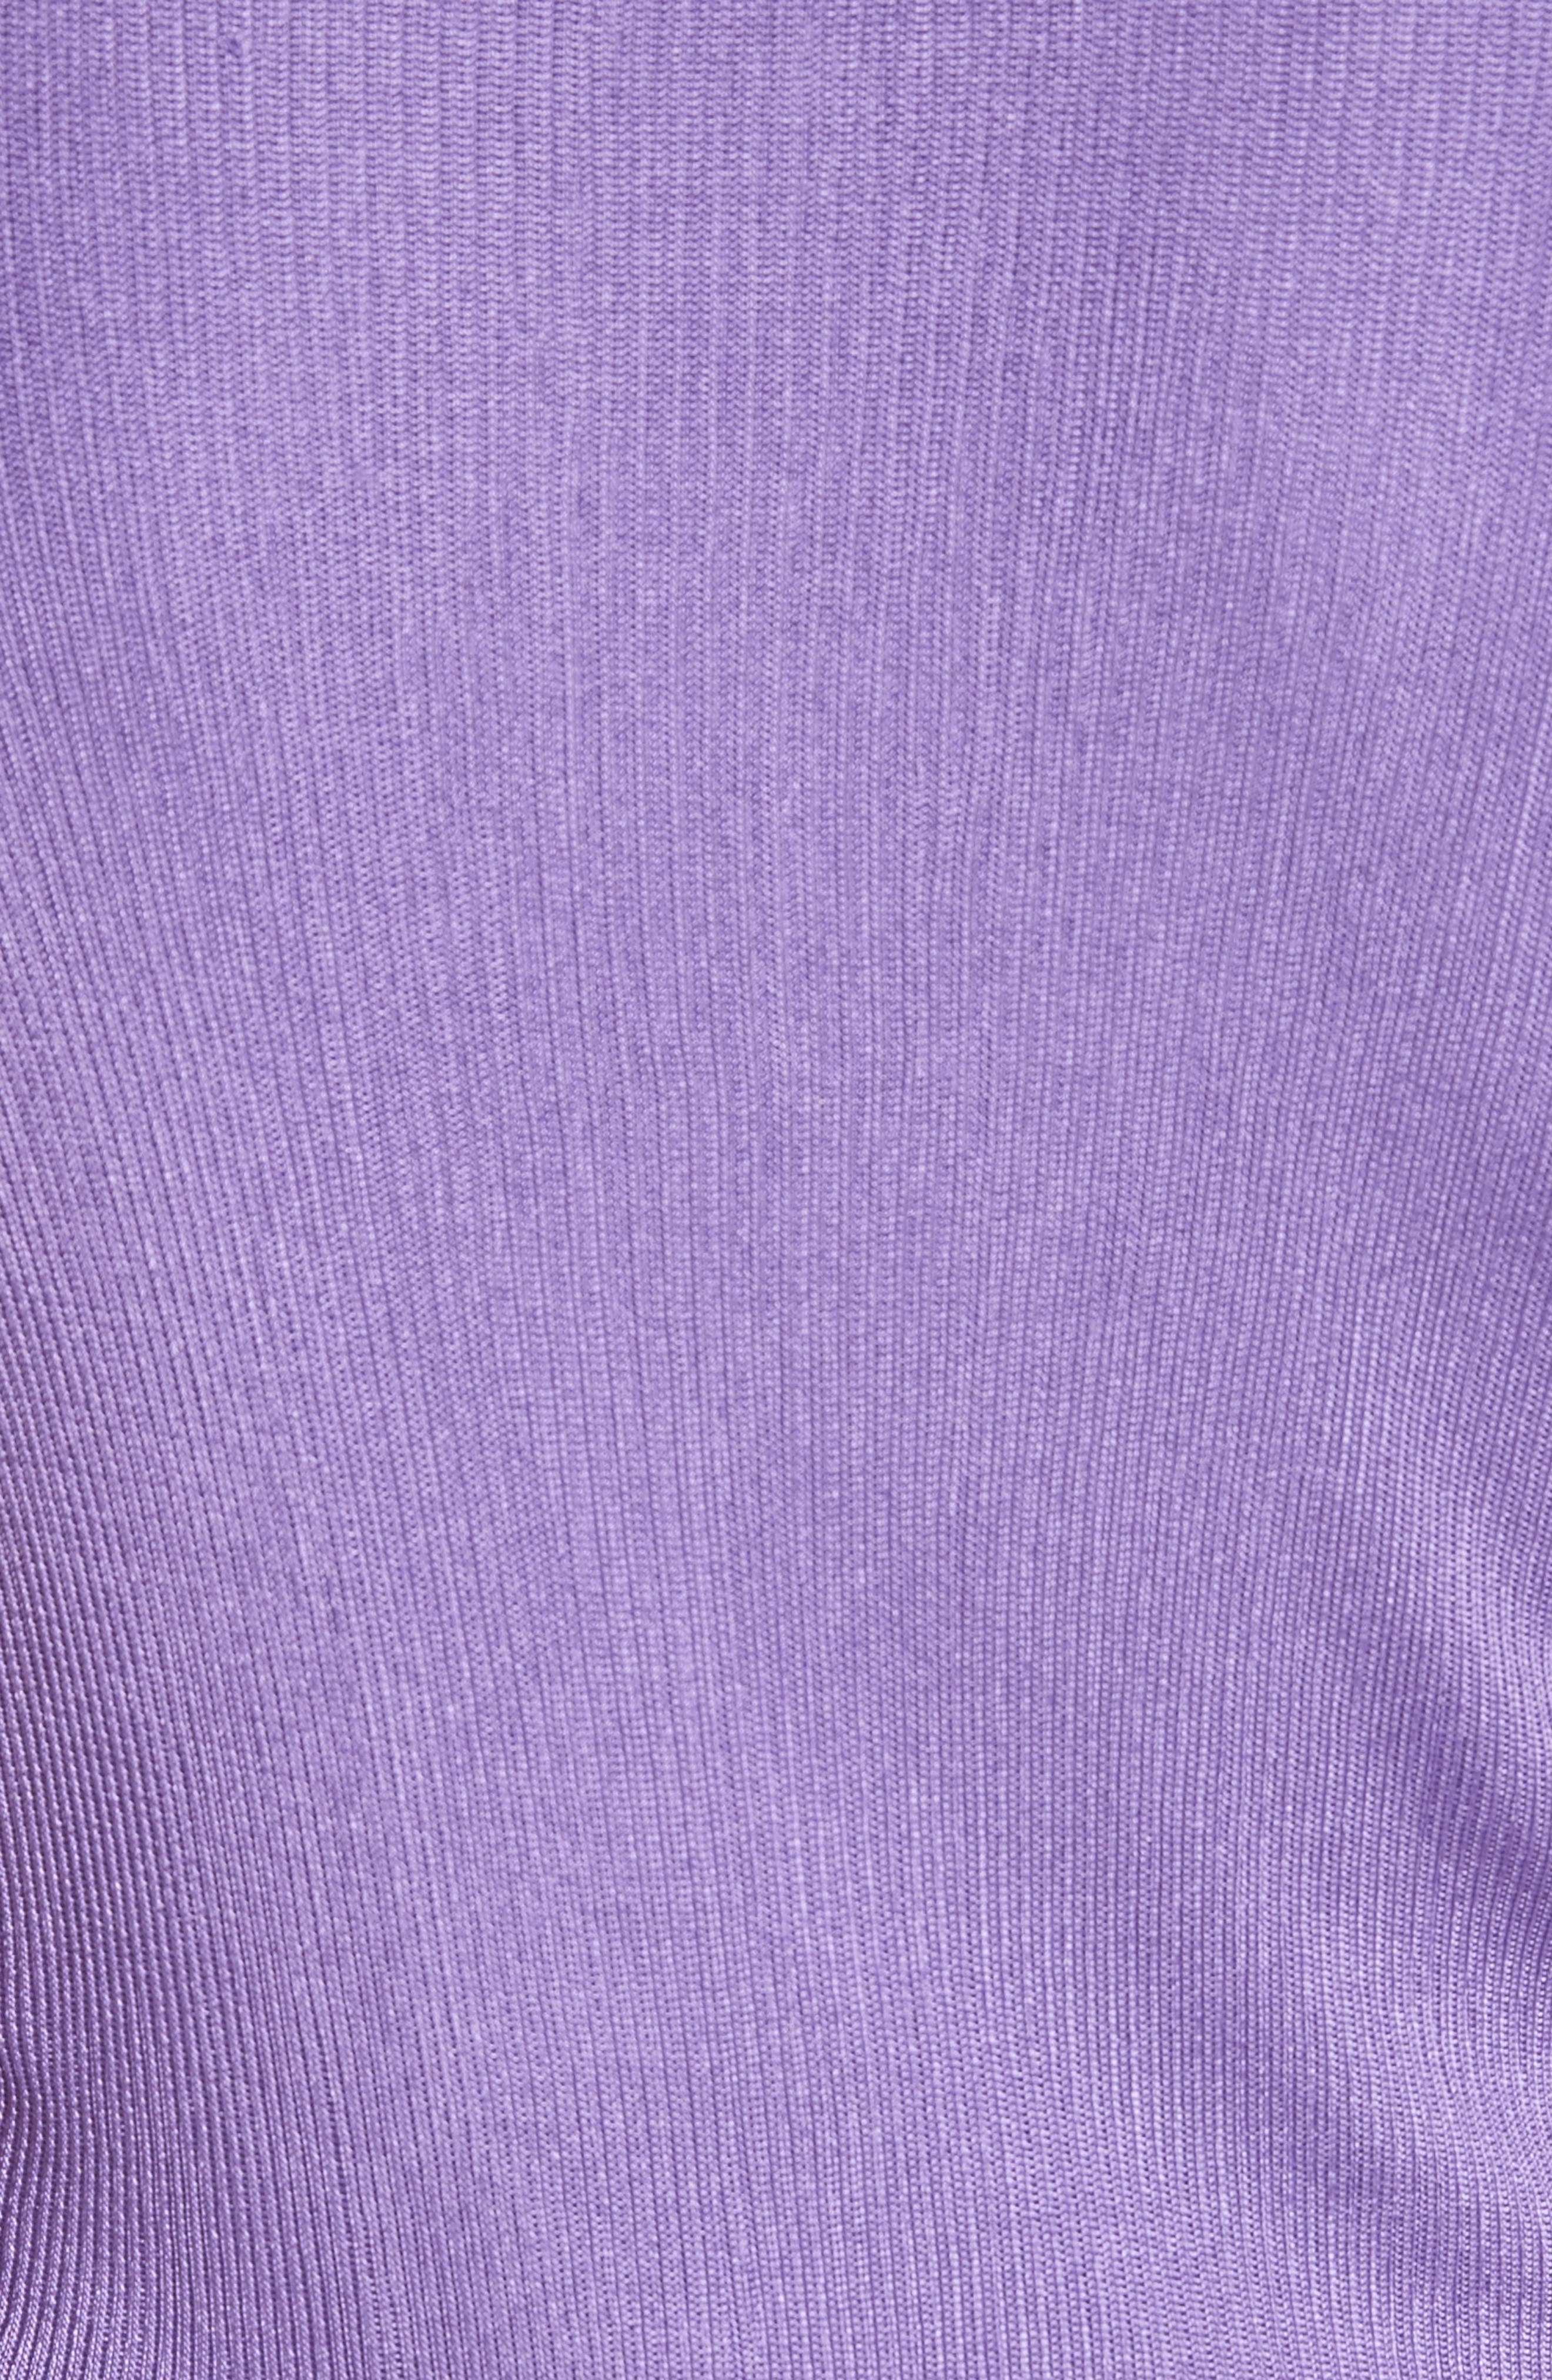 Ruched Side Layered Rib Knit Dress,                             Alternate thumbnail 6, color,                             Lilas